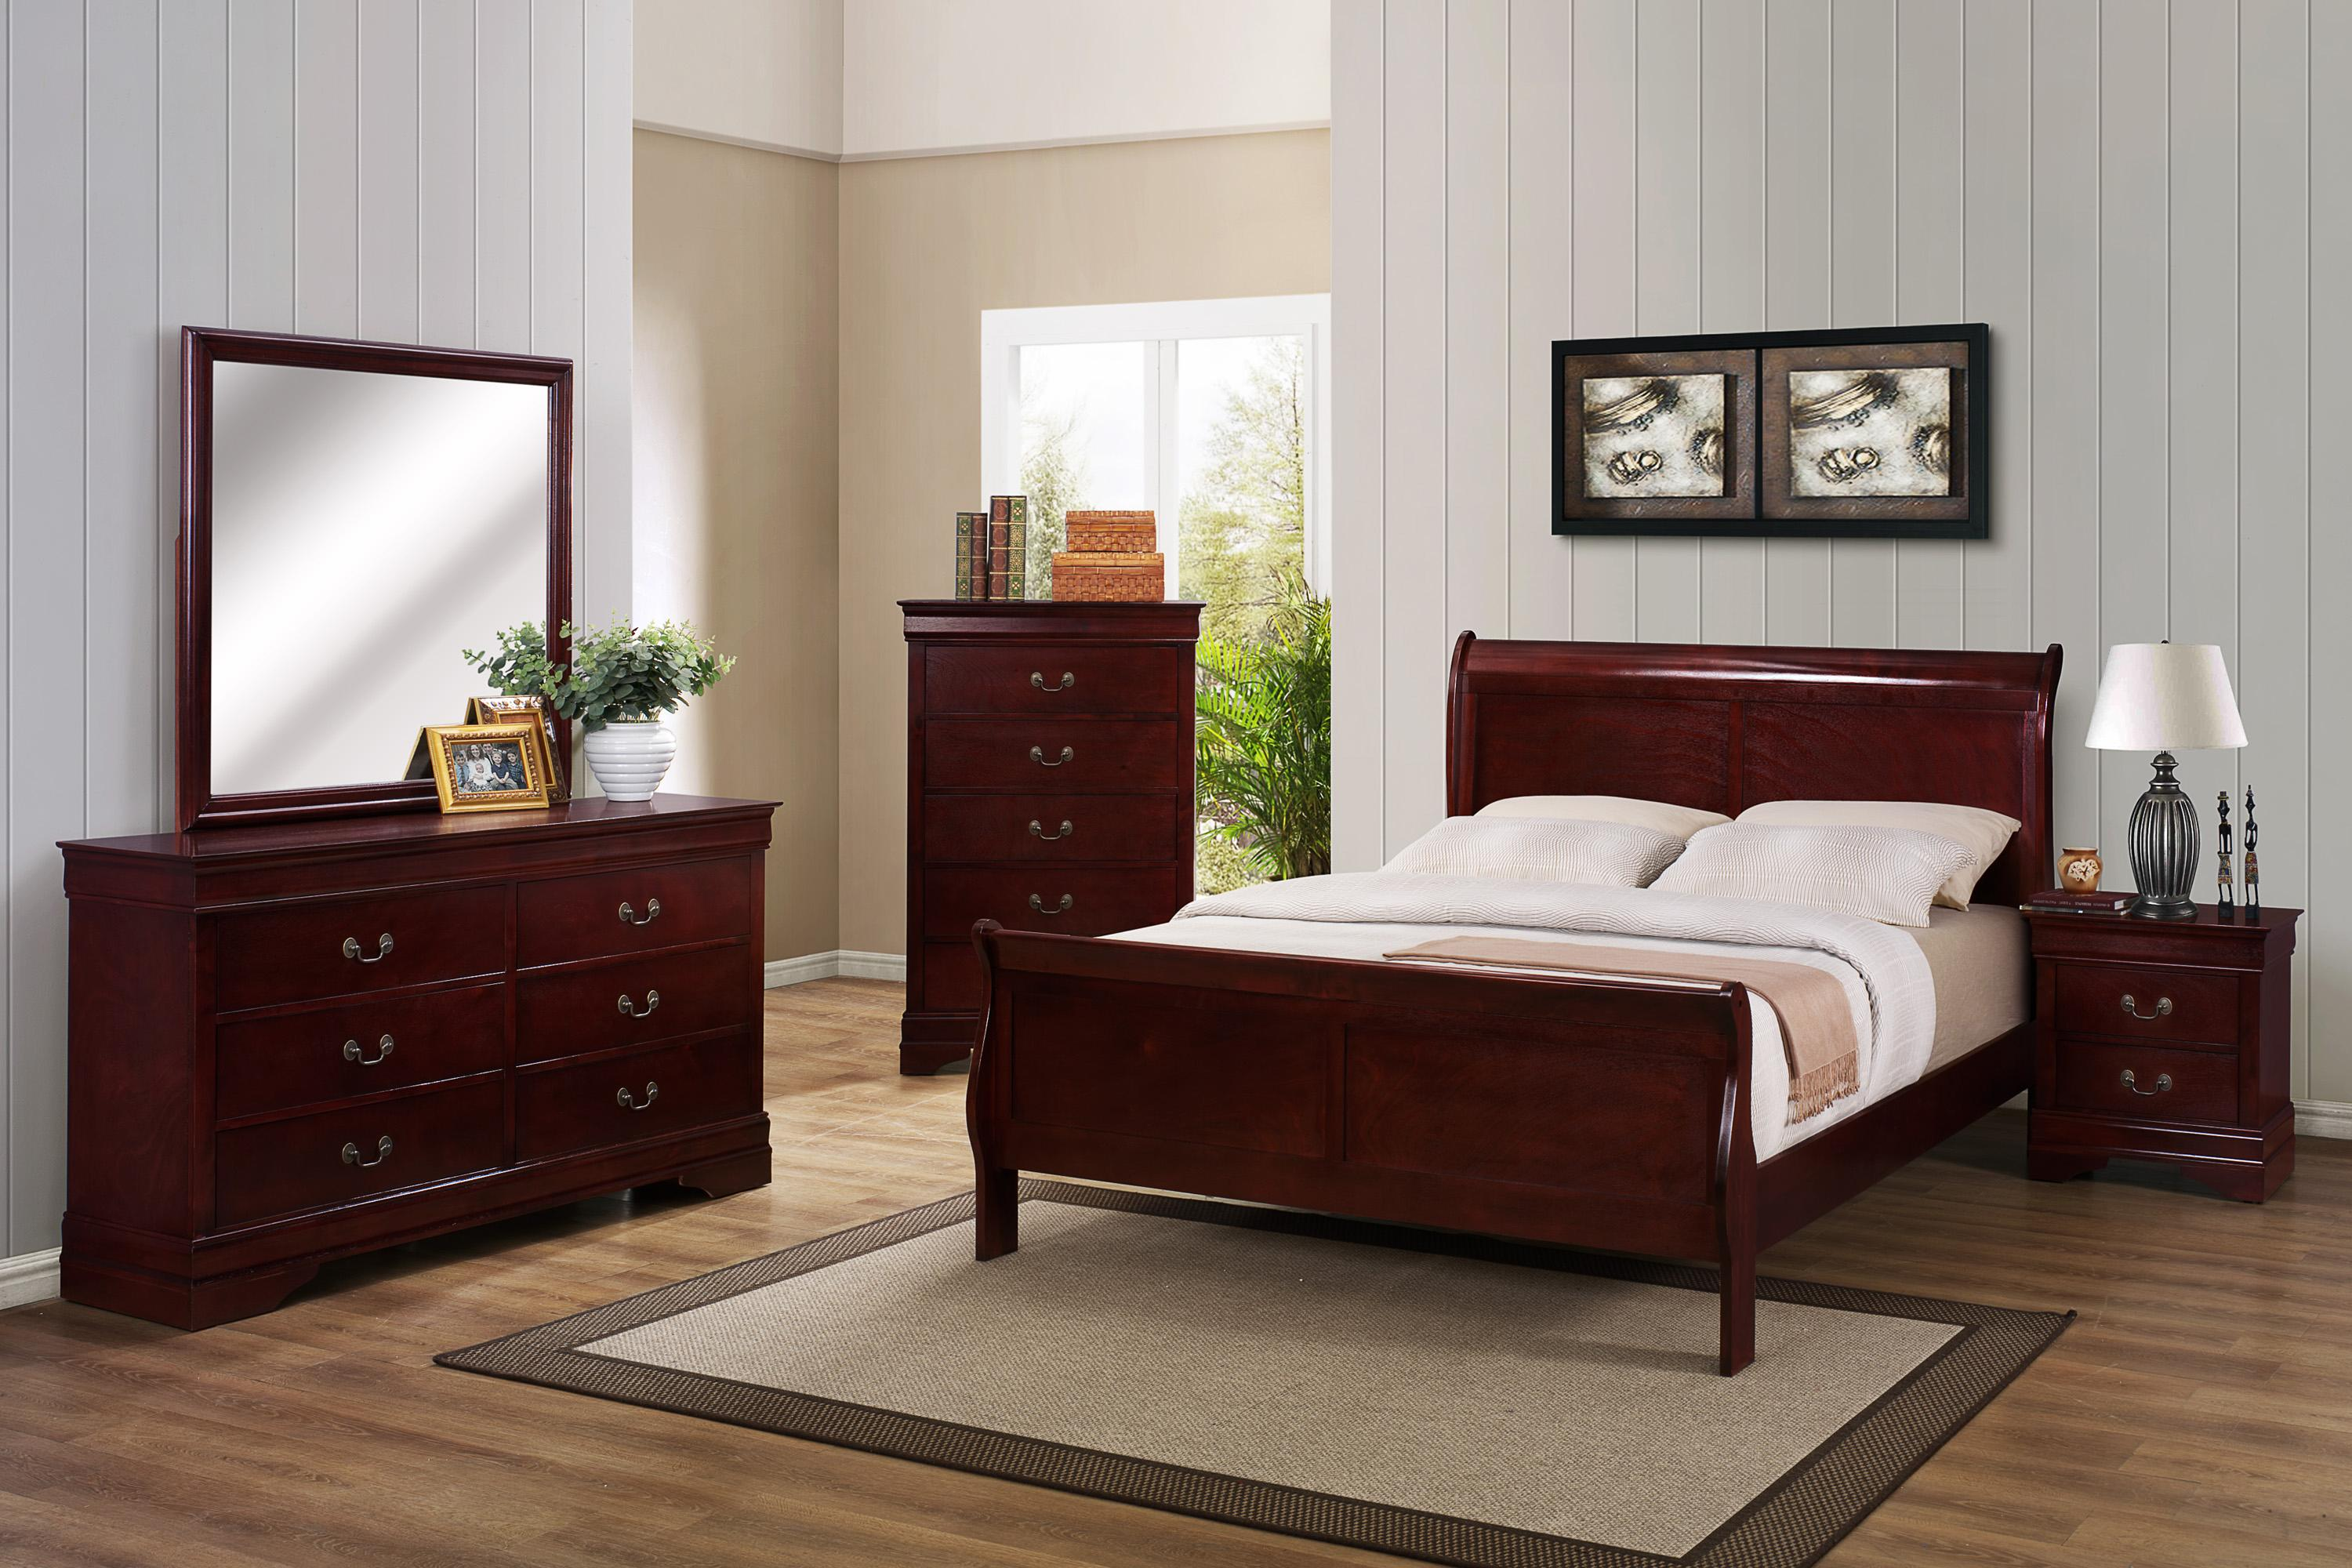 B3800 Louis Phillipe Full Bedroom Group by Crown Mark at Northeast Factory Direct